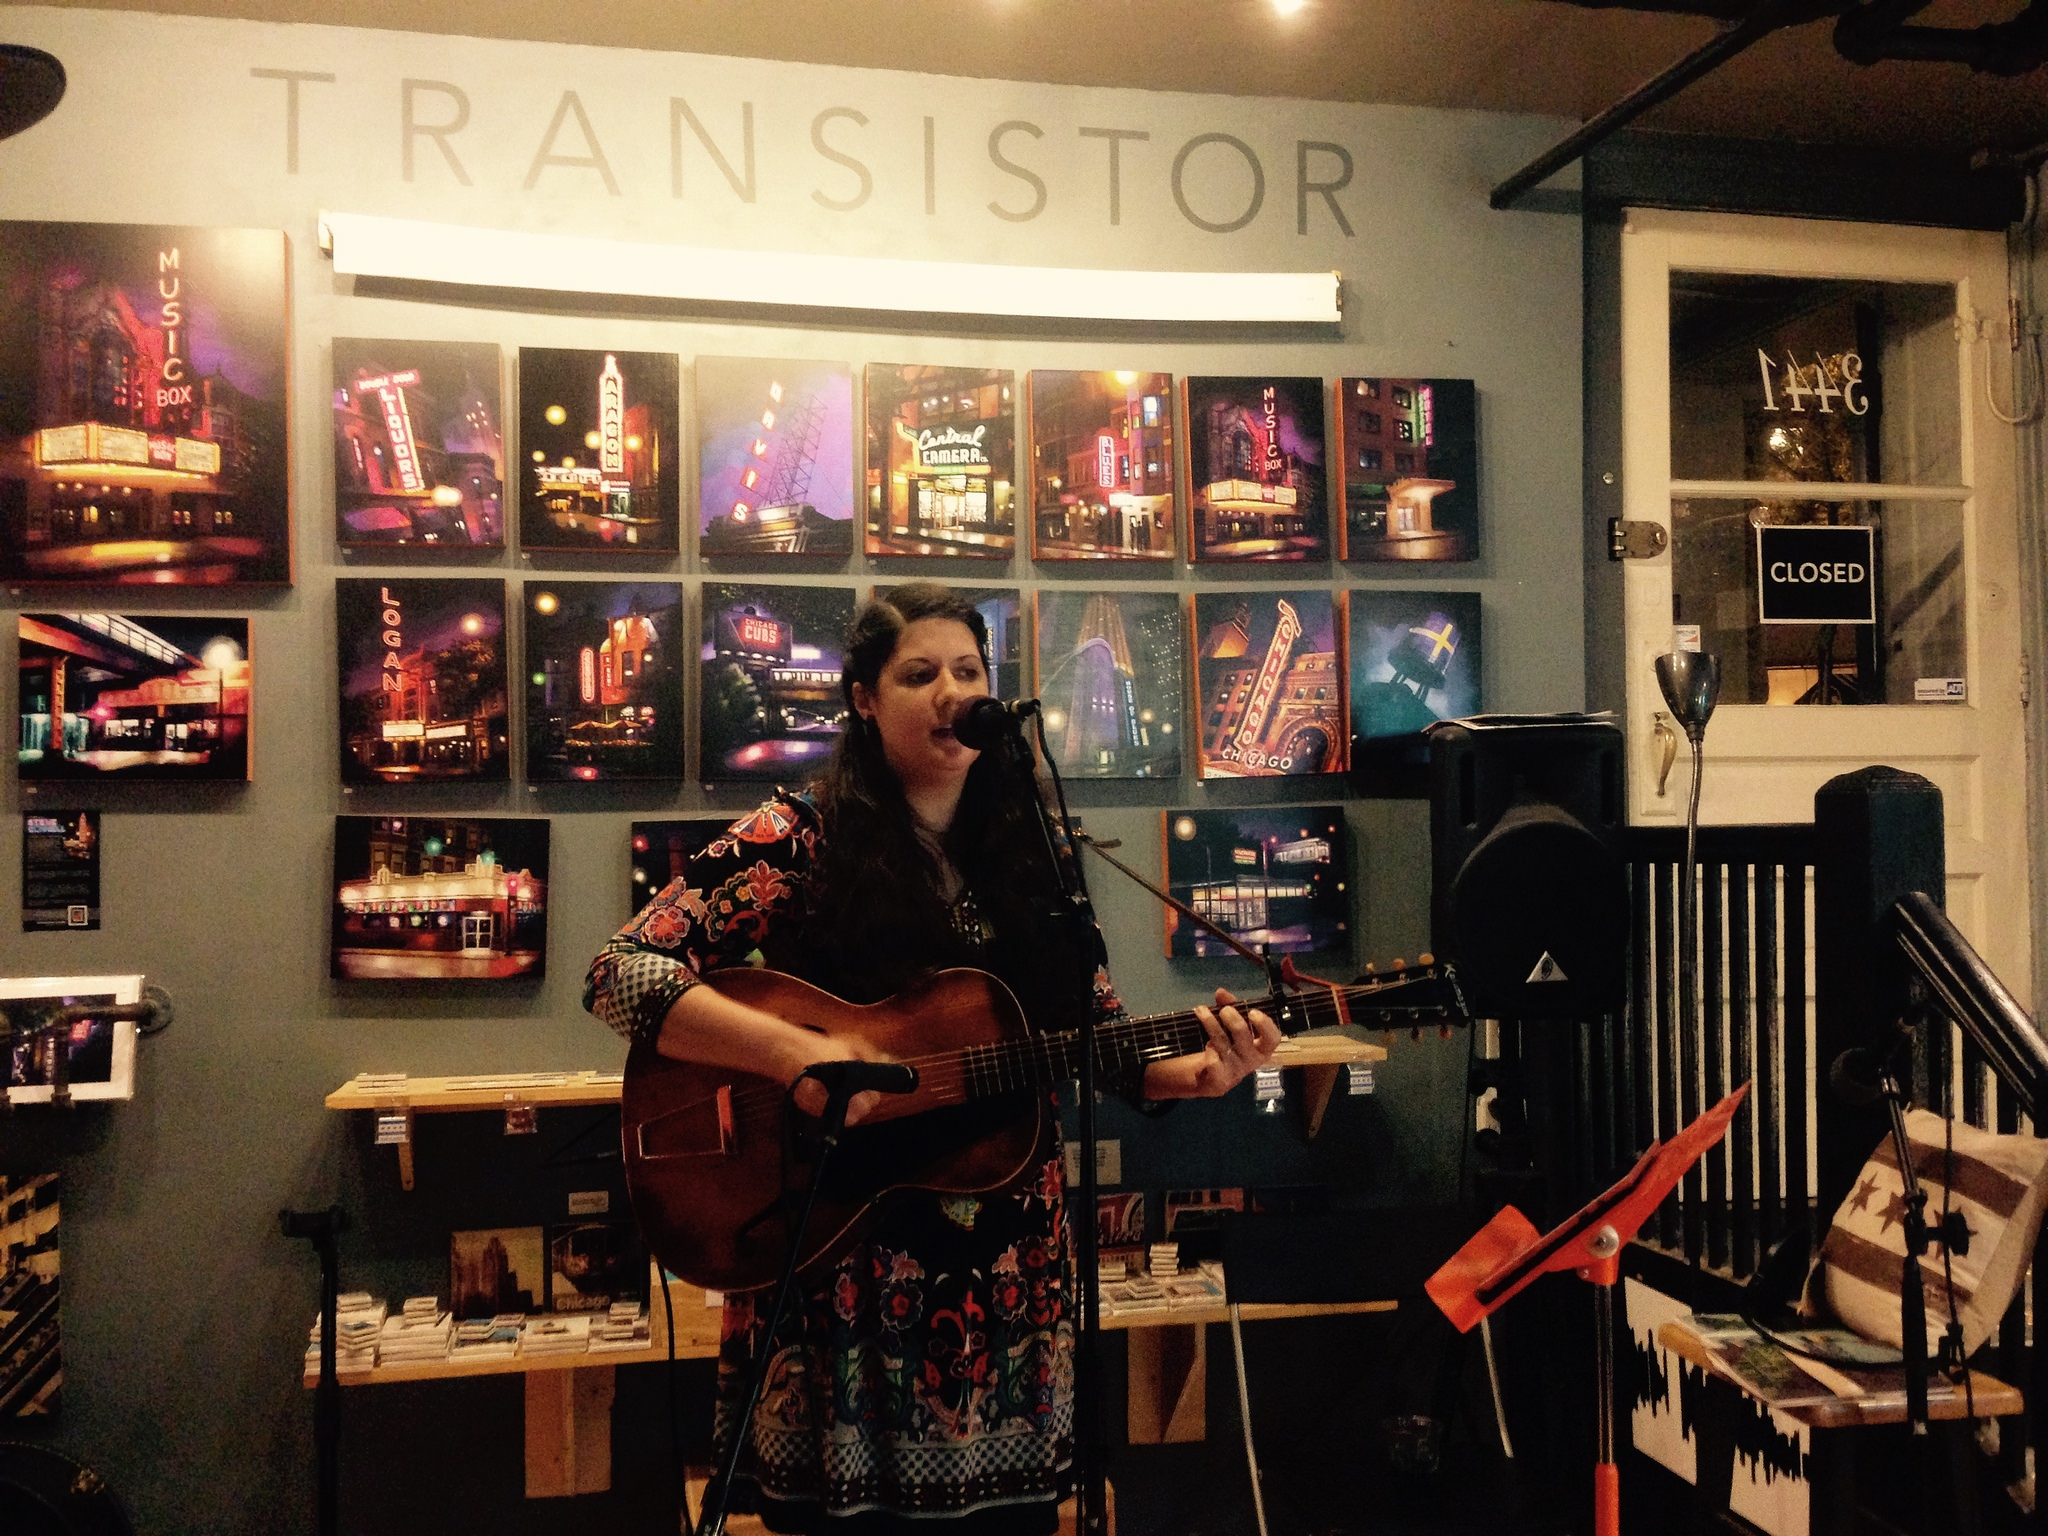 Friday night live at Transistor: acoustic singer-songwriters  Robin Bienemann ,  Rachel Drew  and  Rebecca Jasso .   Read more